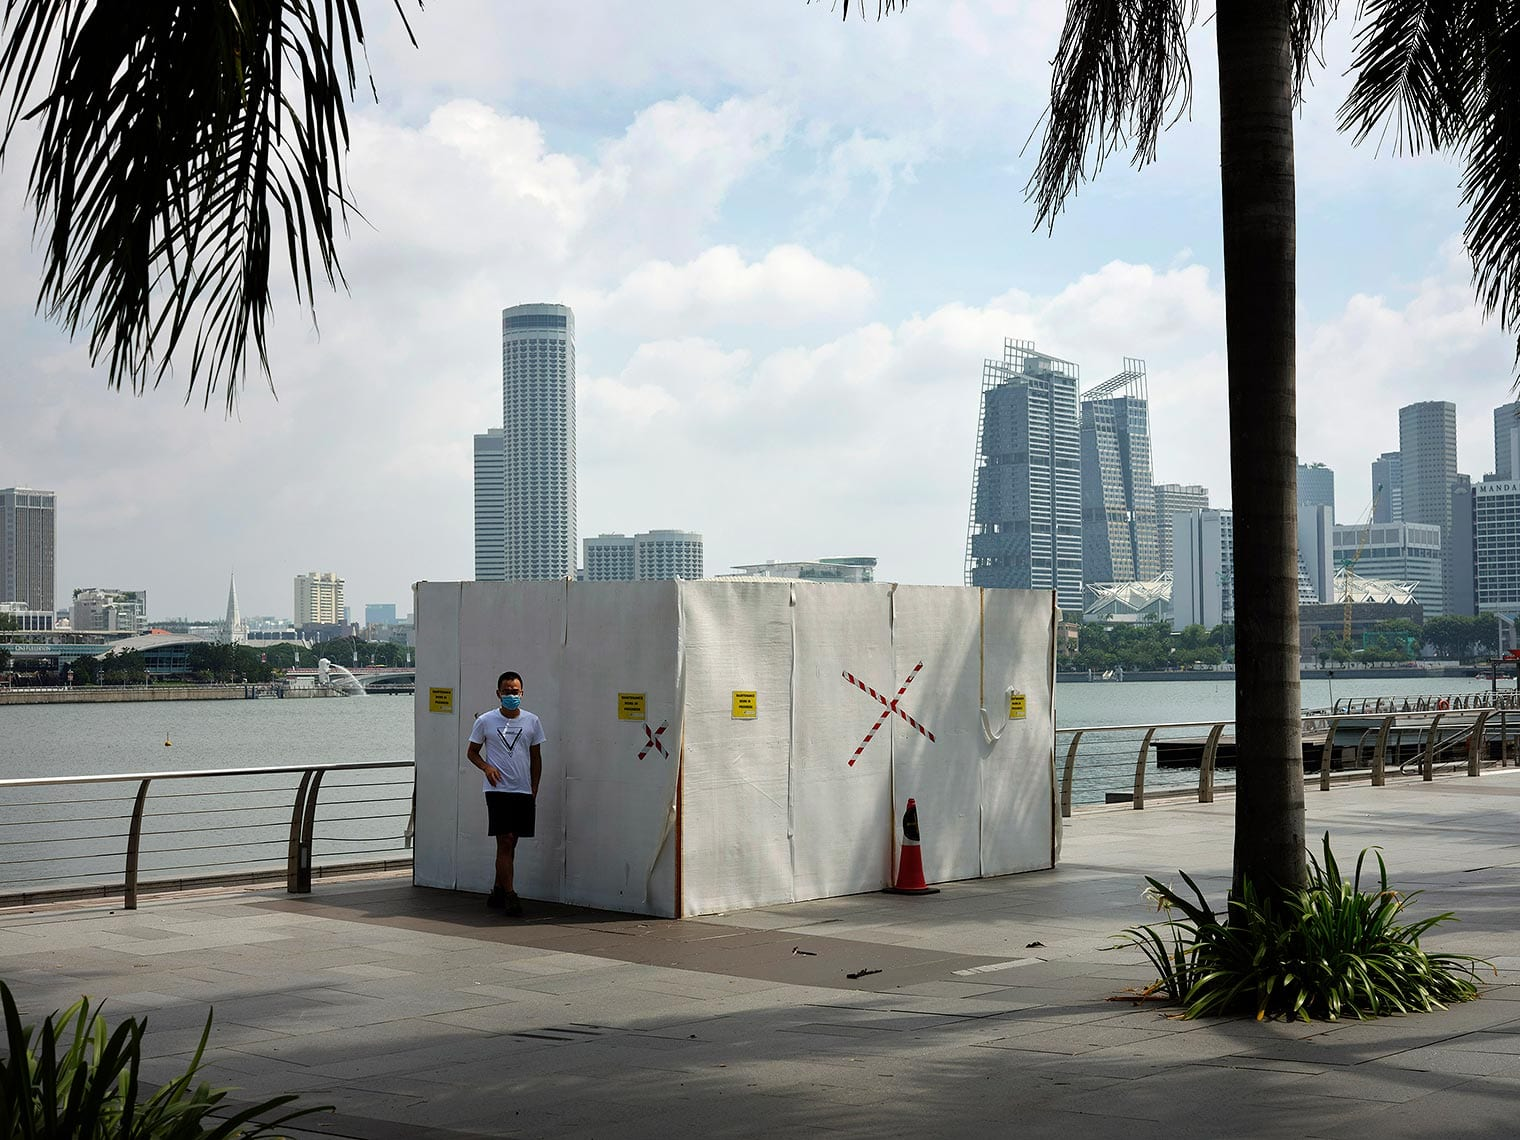 A lone masked person stands before a taped-off small building by the water in Singapore